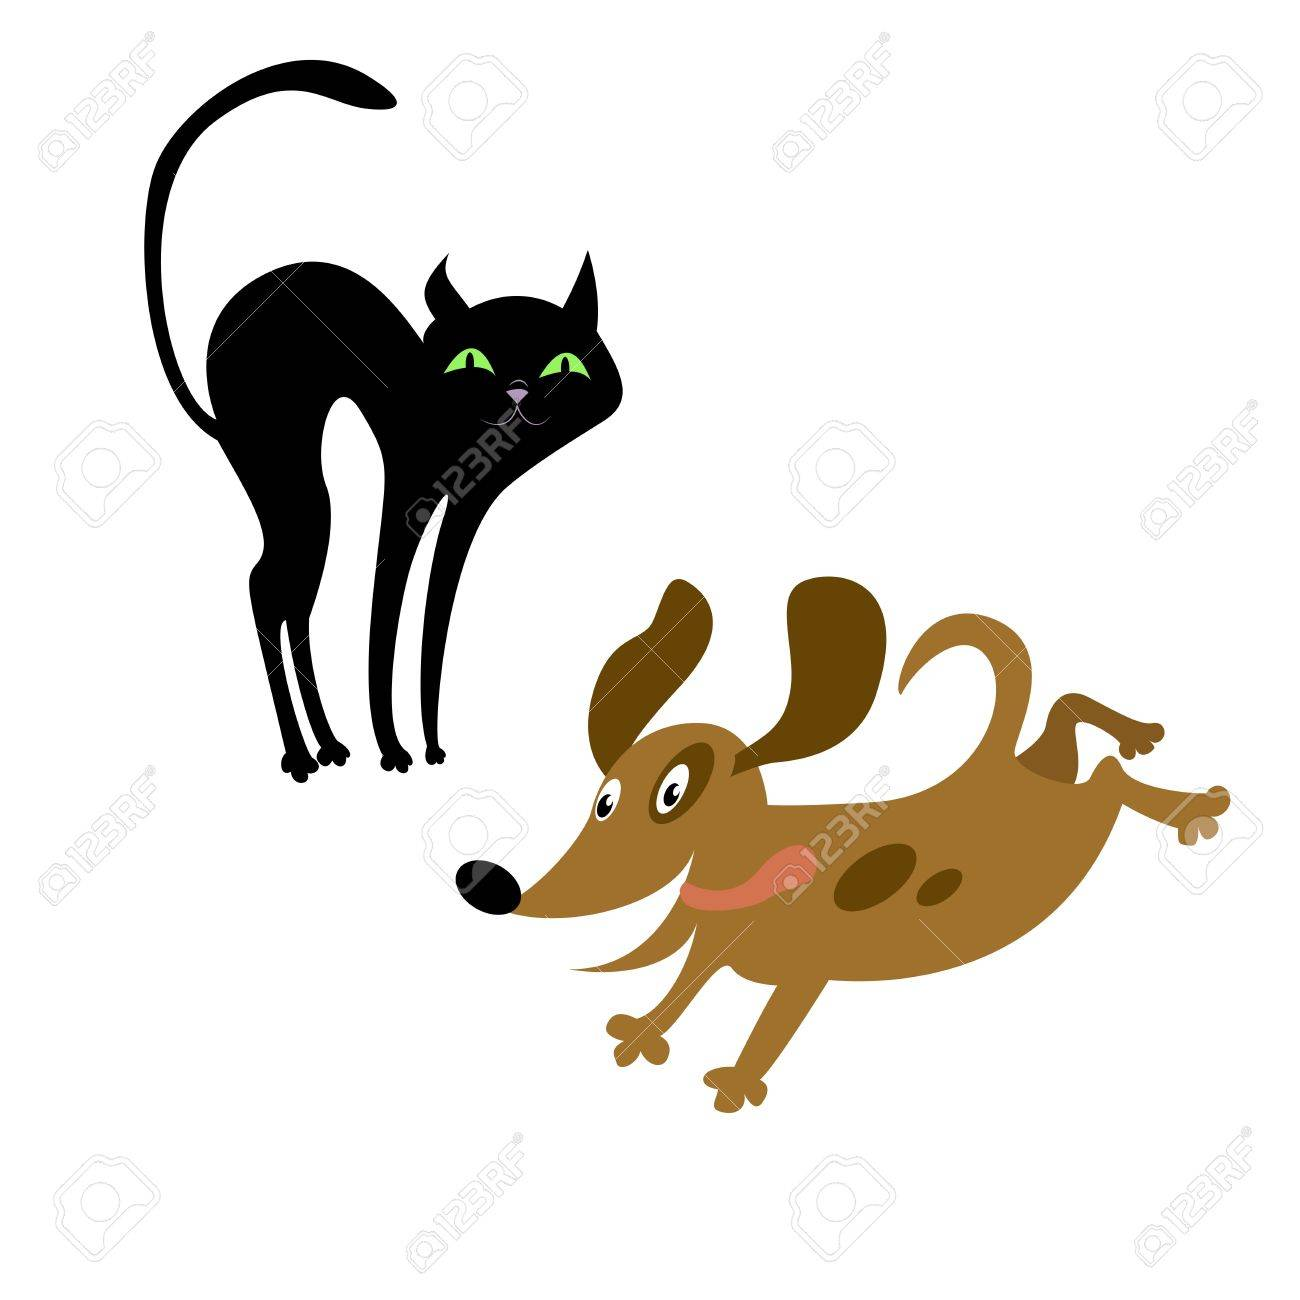 Cat and dog Stock Vector - 17354448